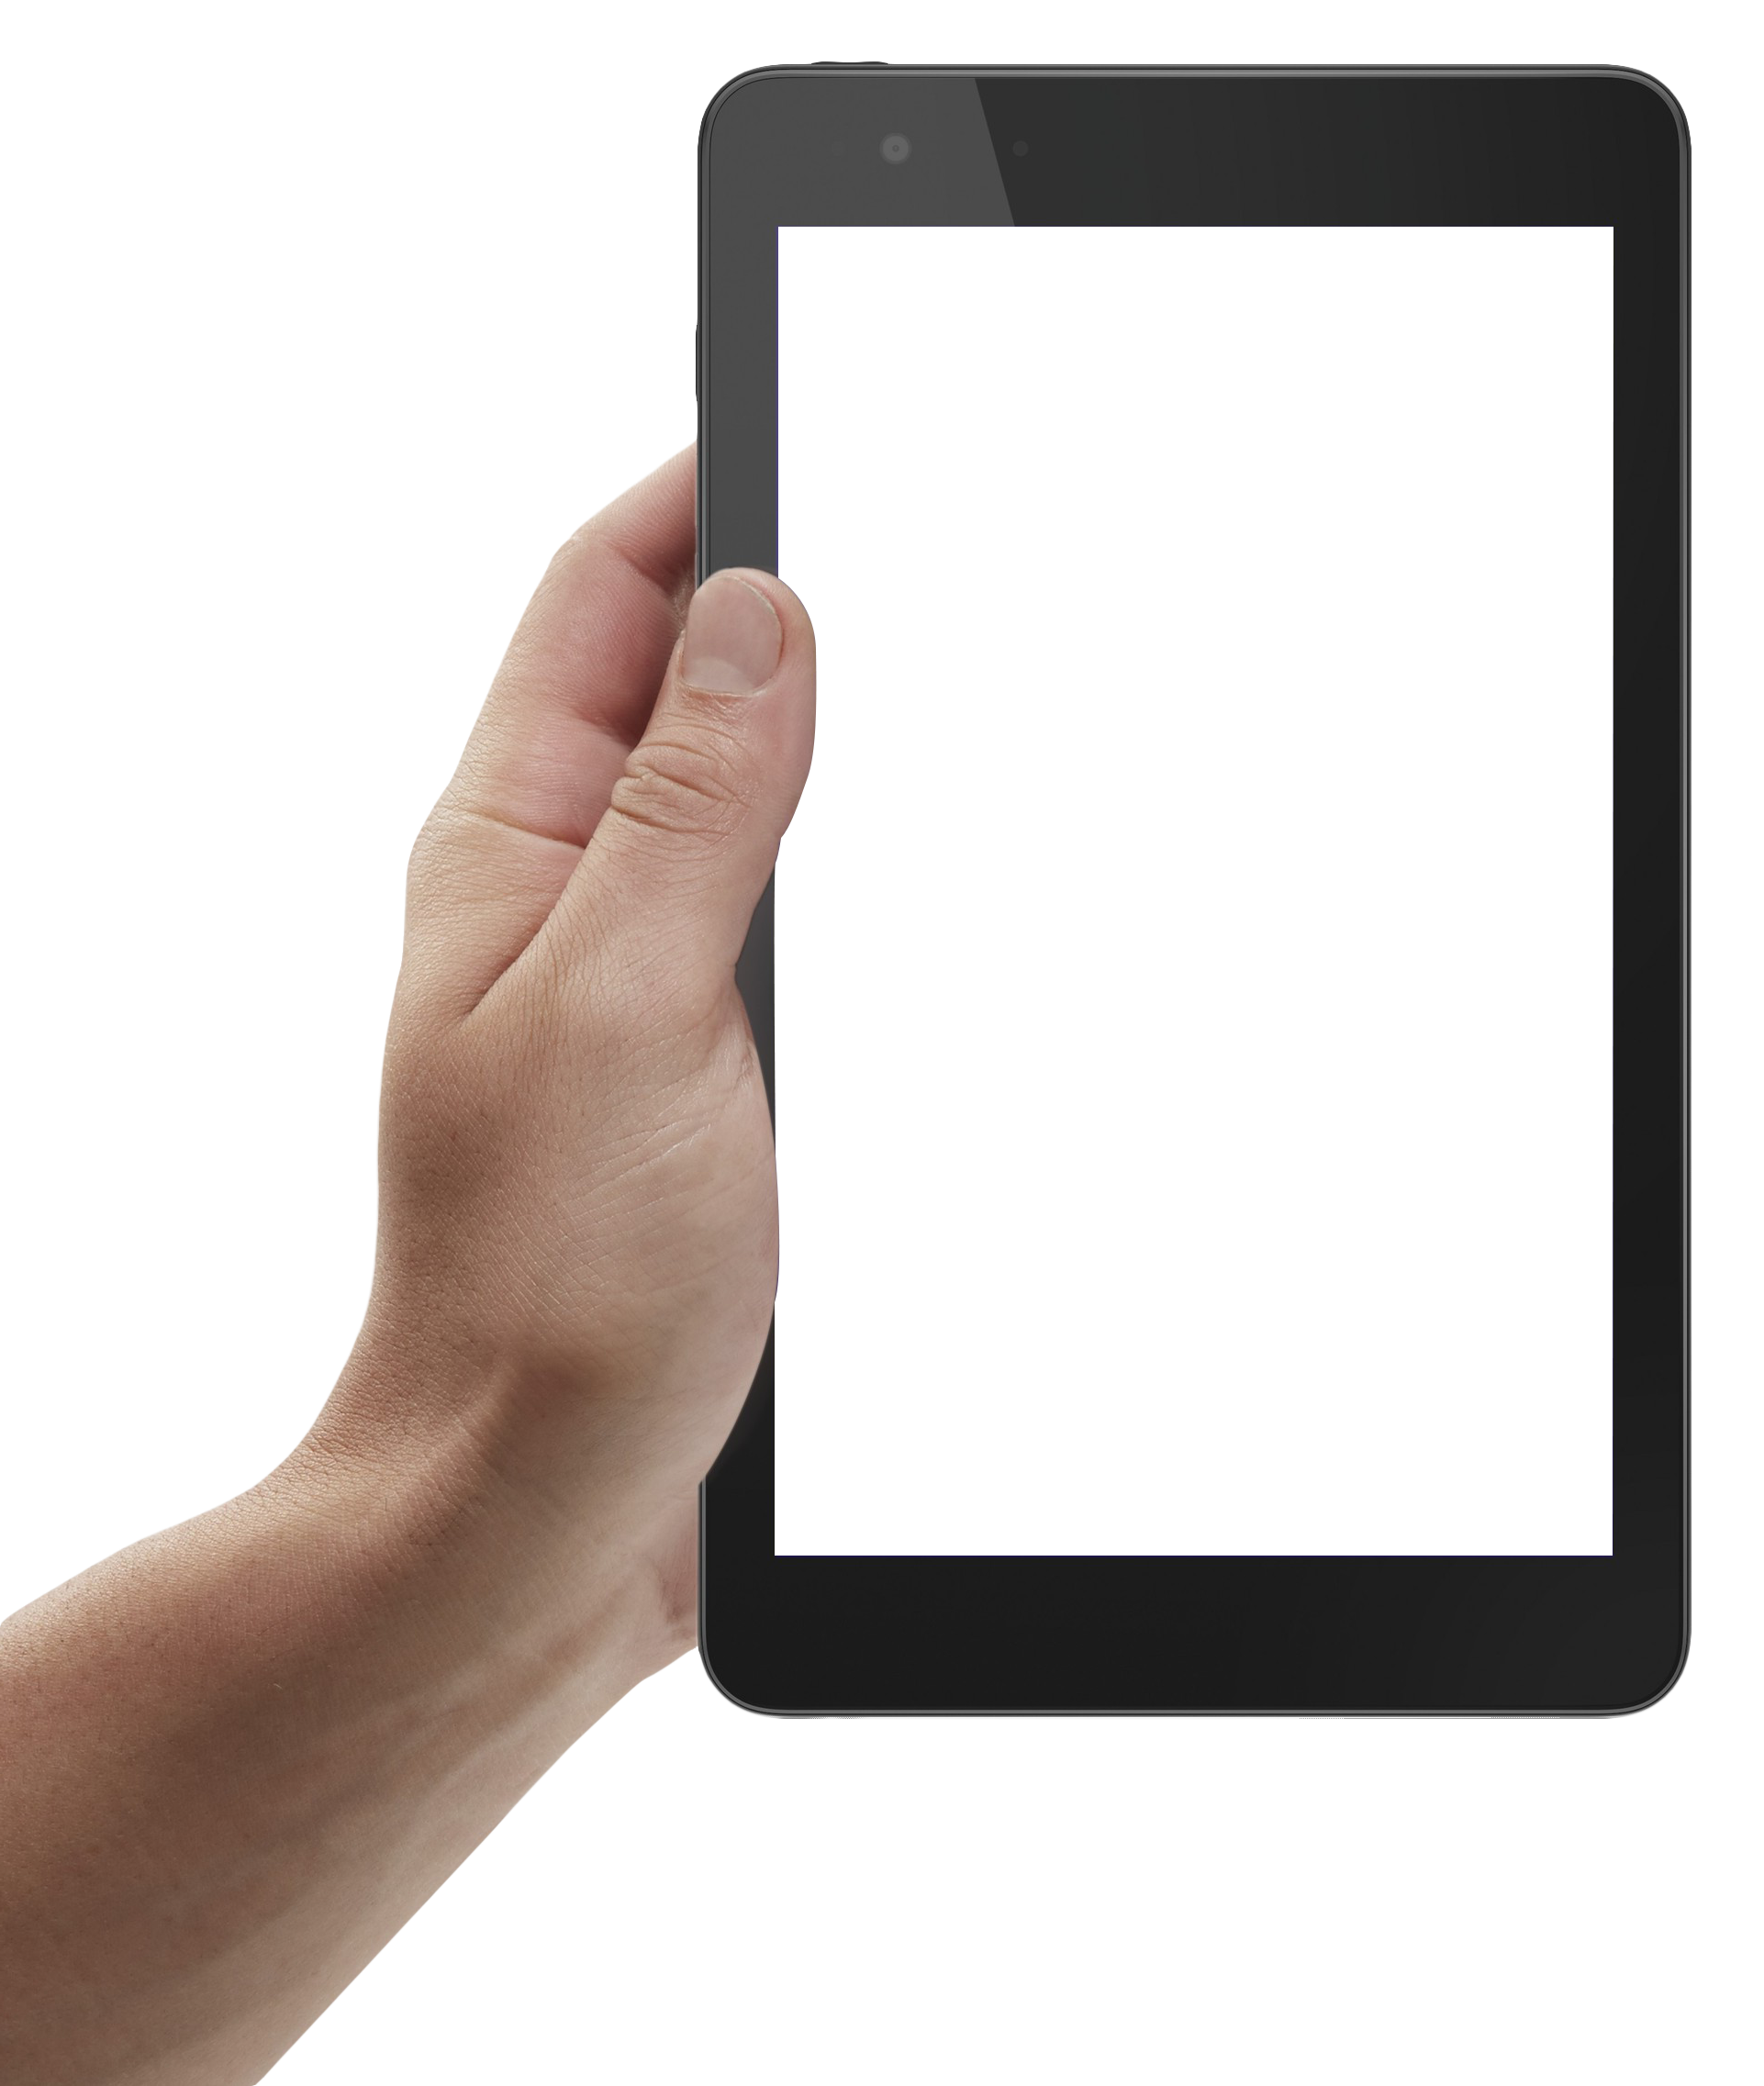 Drawing ipad hand holding. Tablet png image pngpix